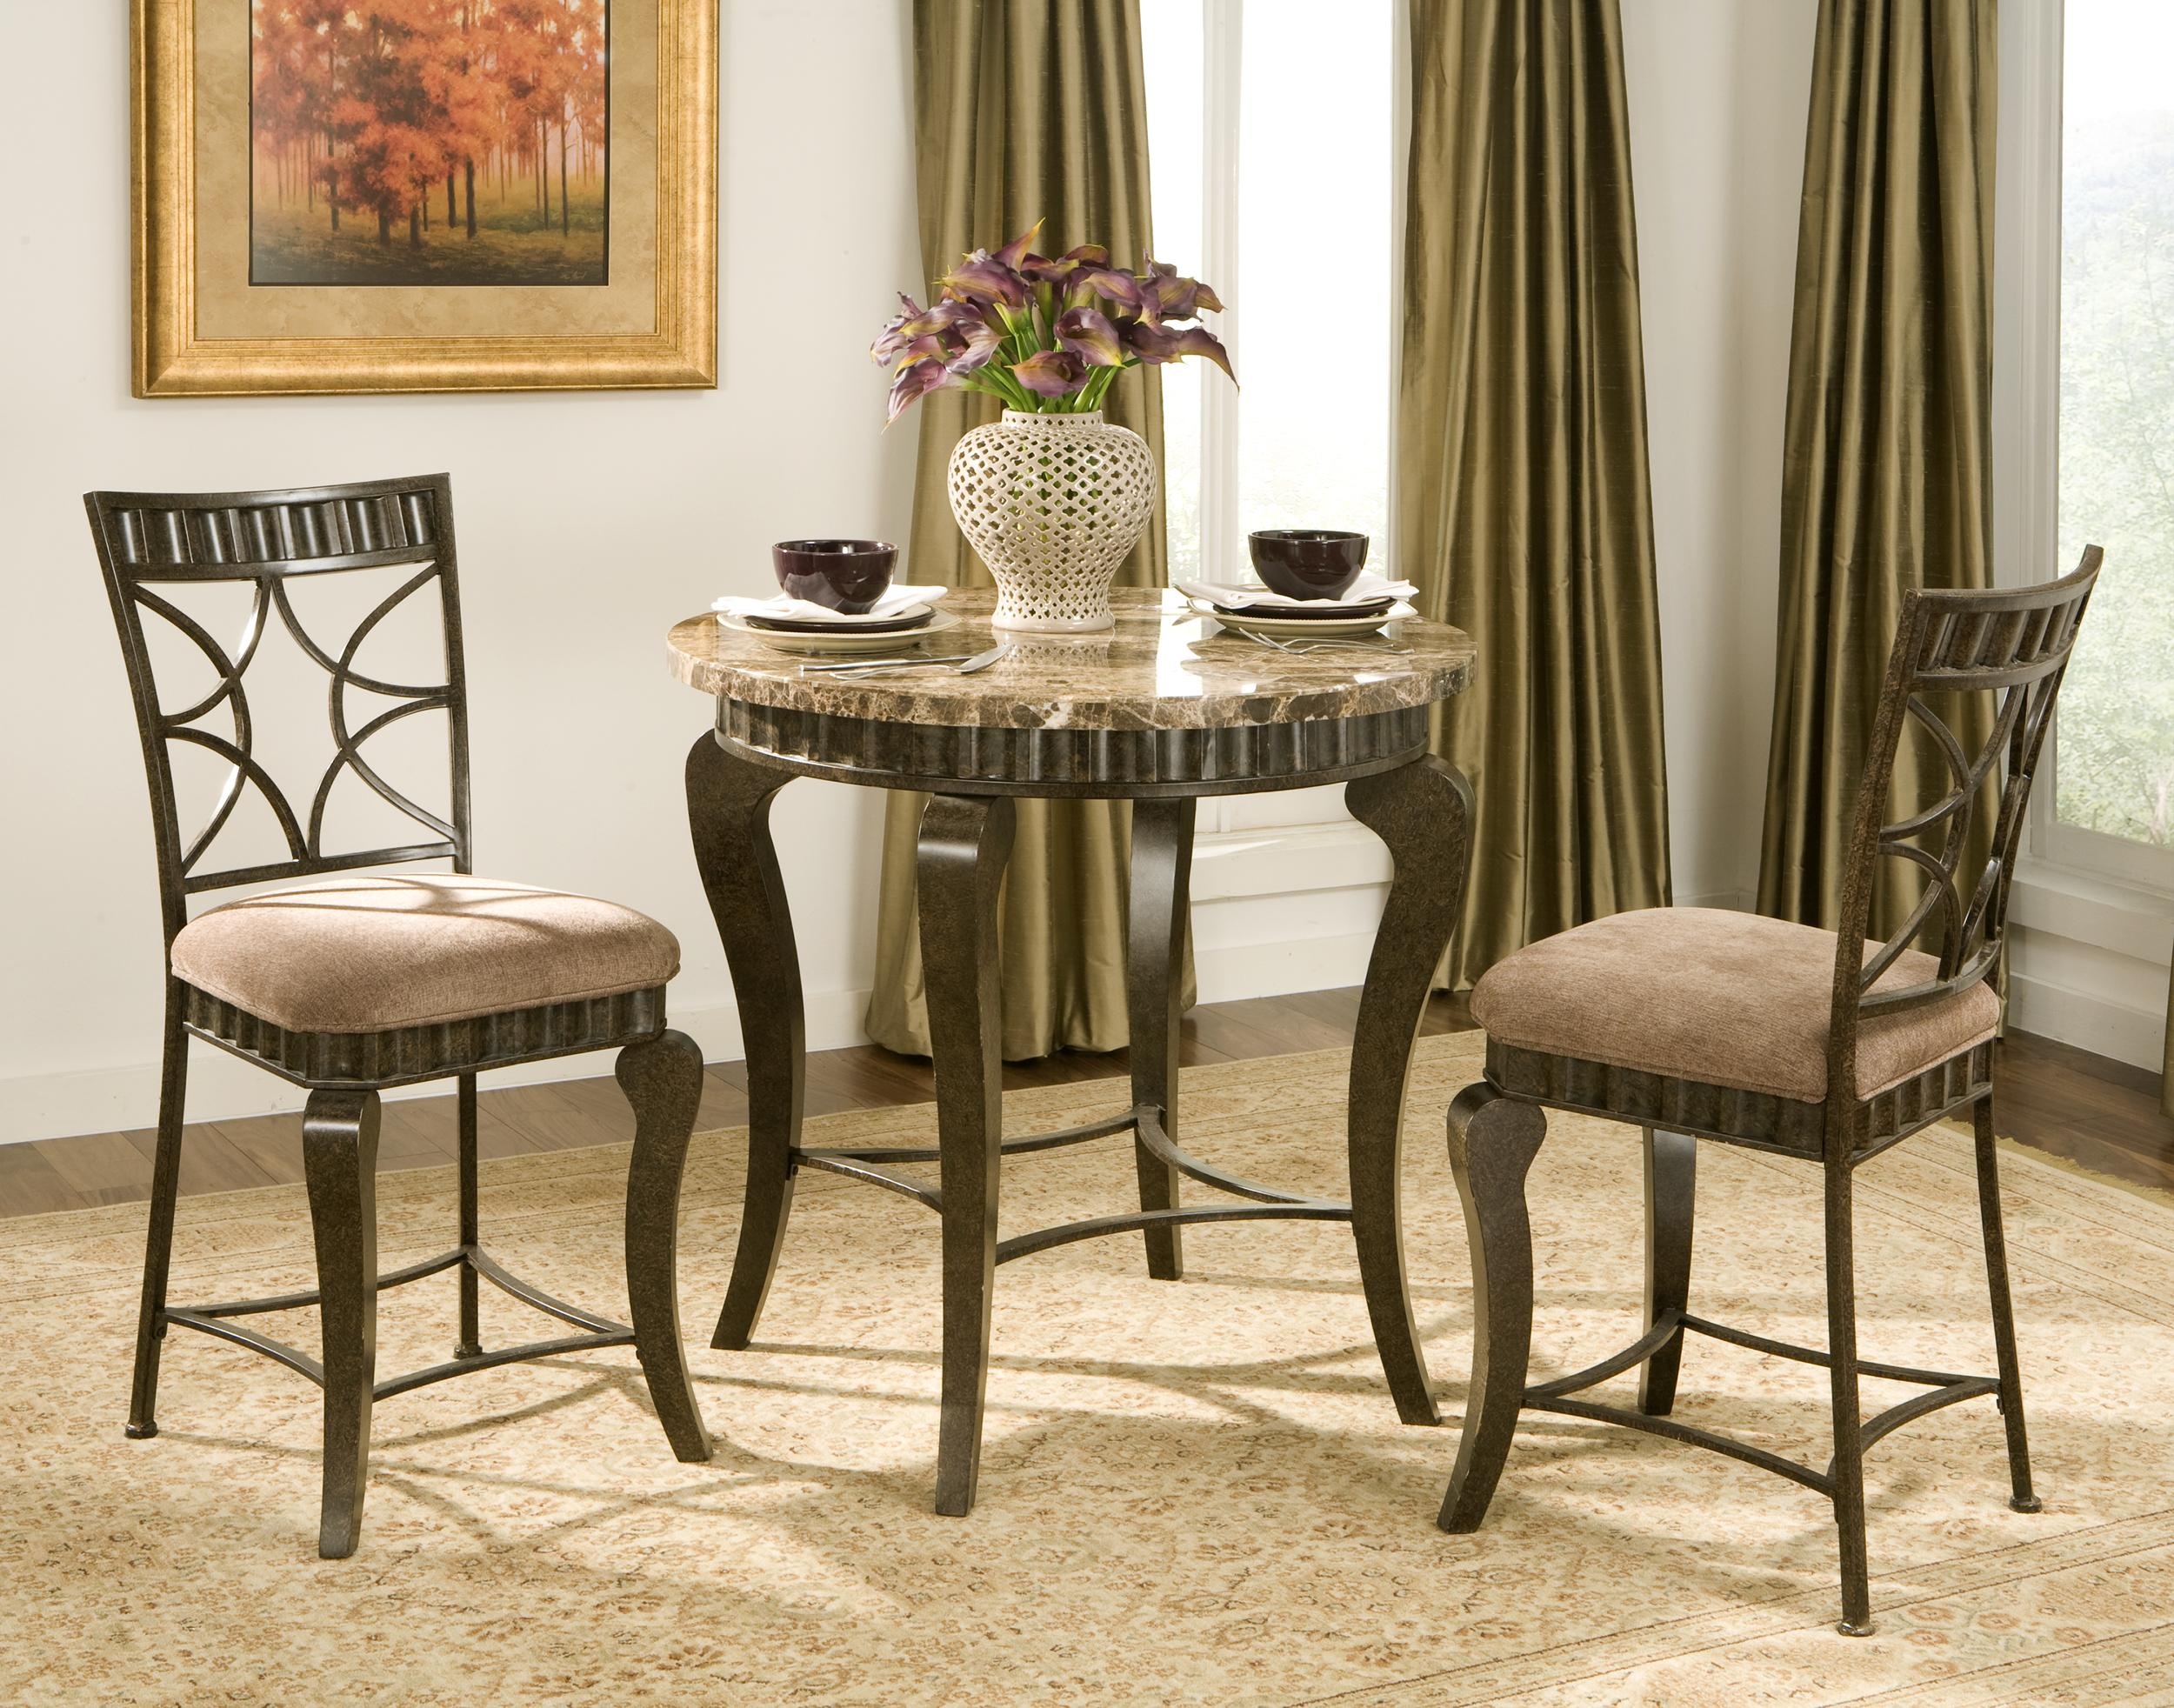 Marble Top Kitchen Table Set Steve Silver Hamlyn 5 Piece Round Faux Marble Top Metal Dining